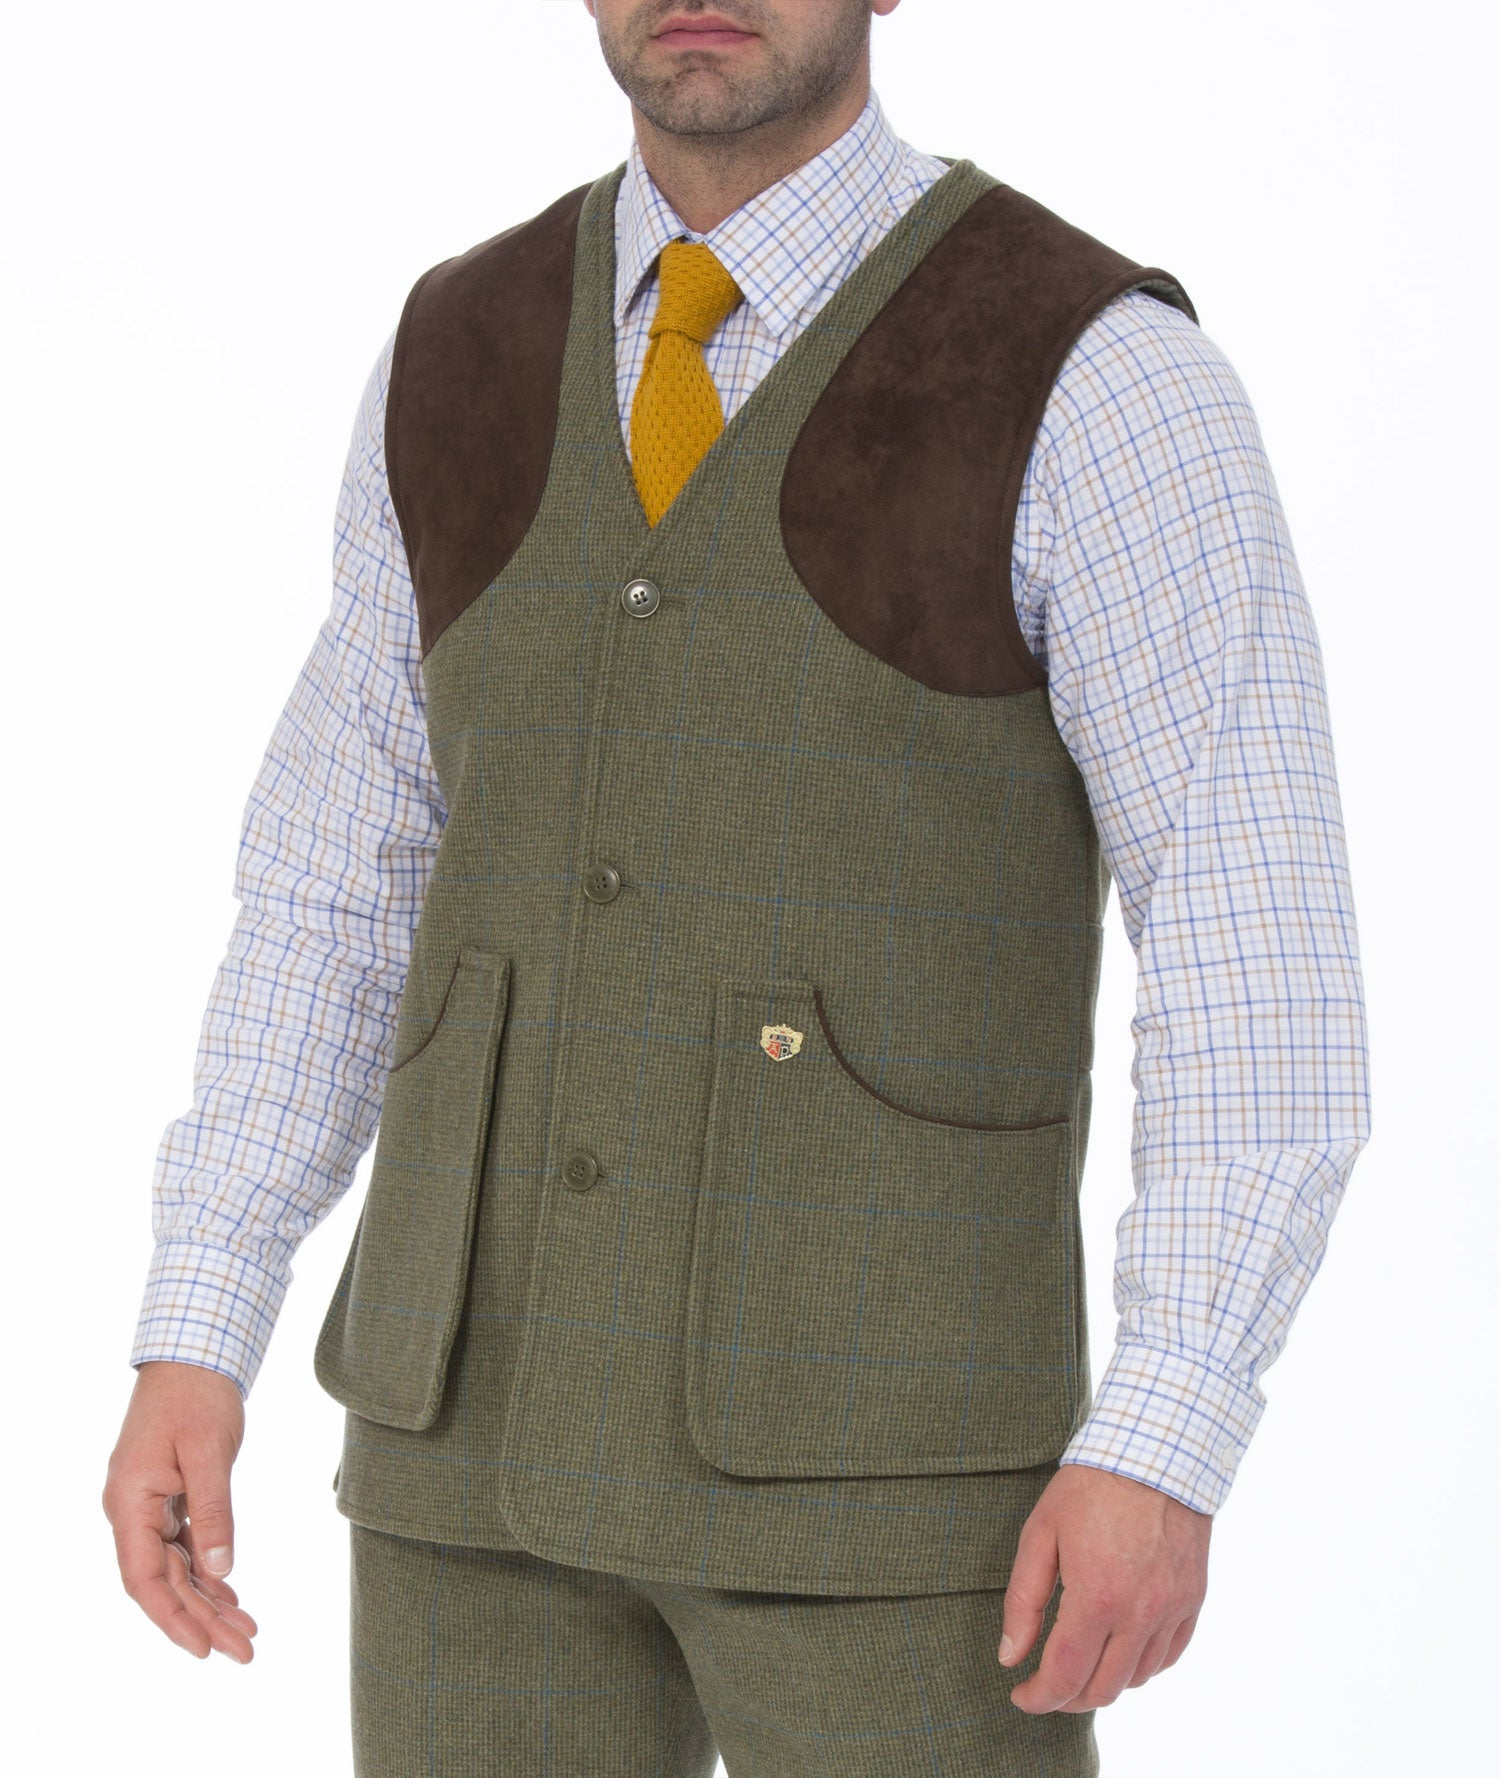 Lagoon Tweed Combrook Men's Tweed Shooting Waistcoat by Alan Paine